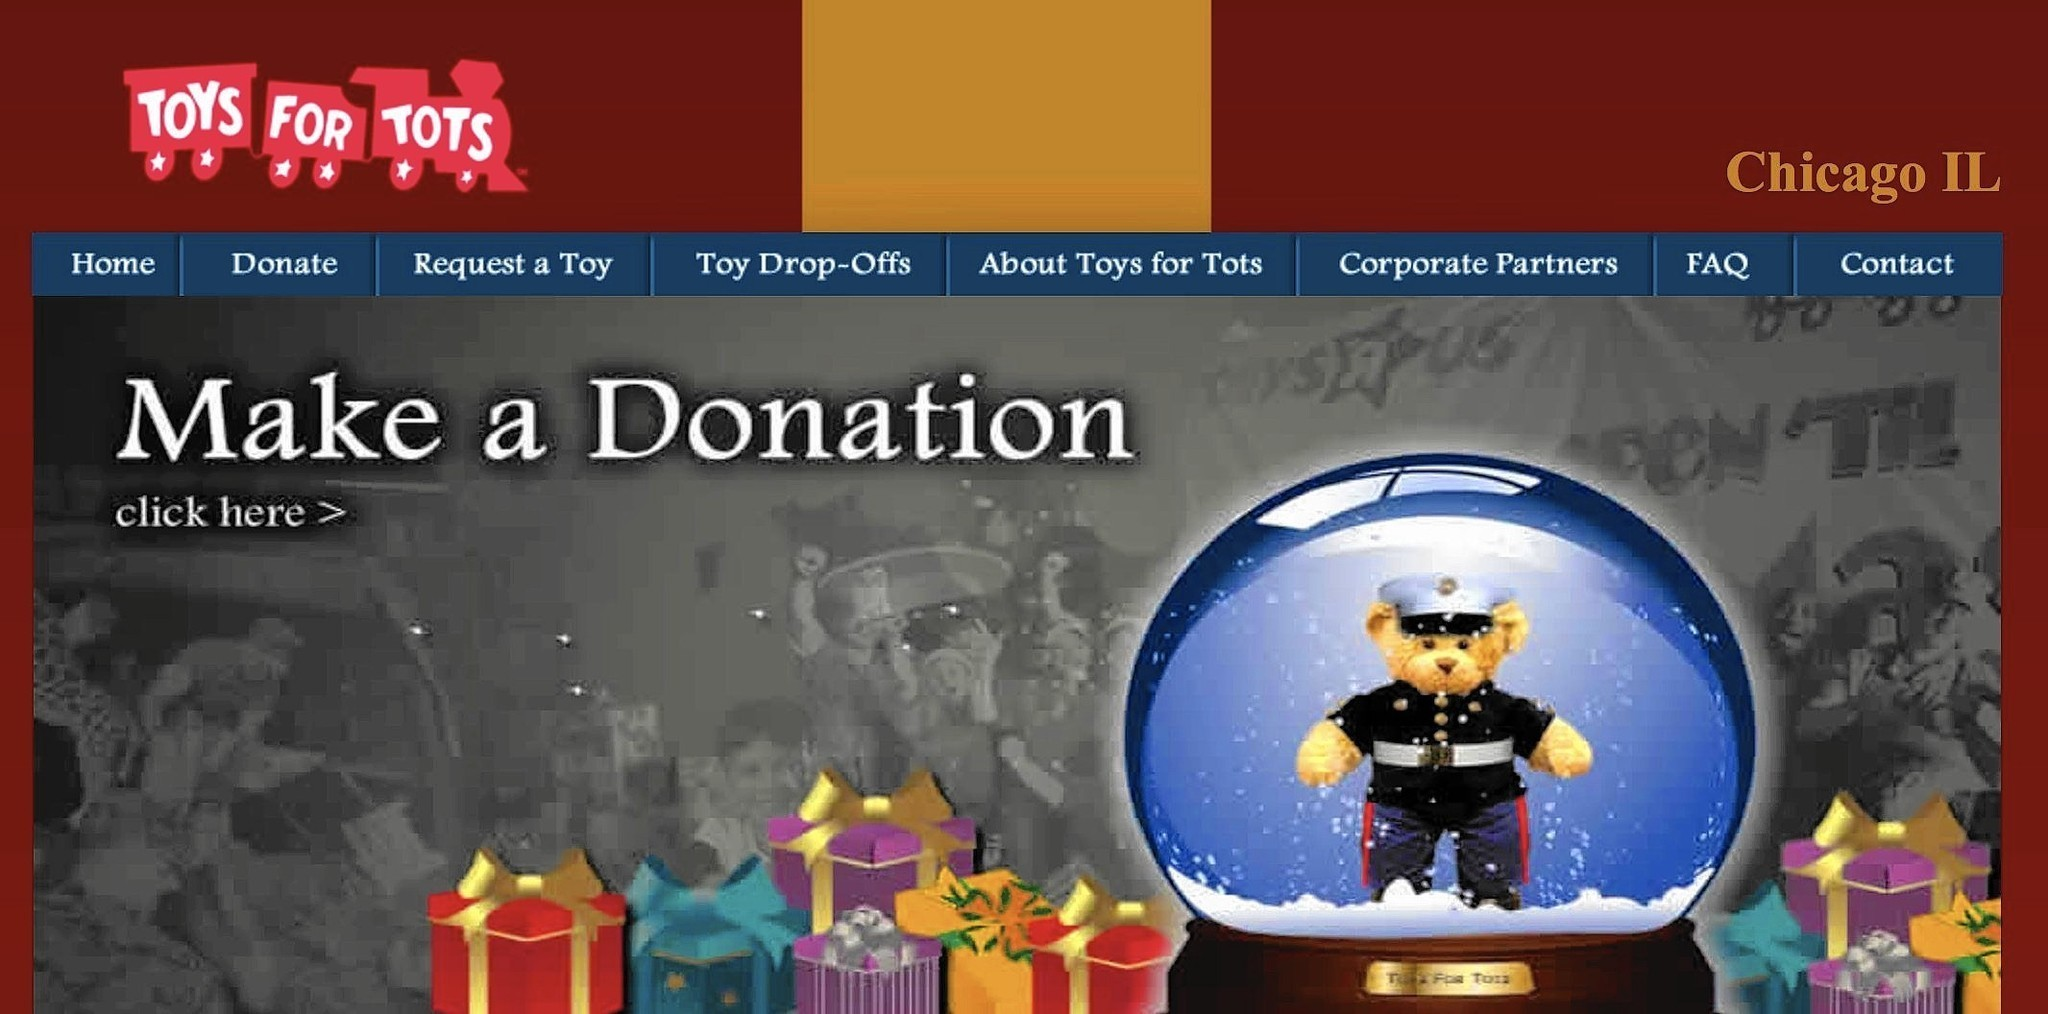 Toys For Tots Collection : Local toys for tots collection points announced wilmette